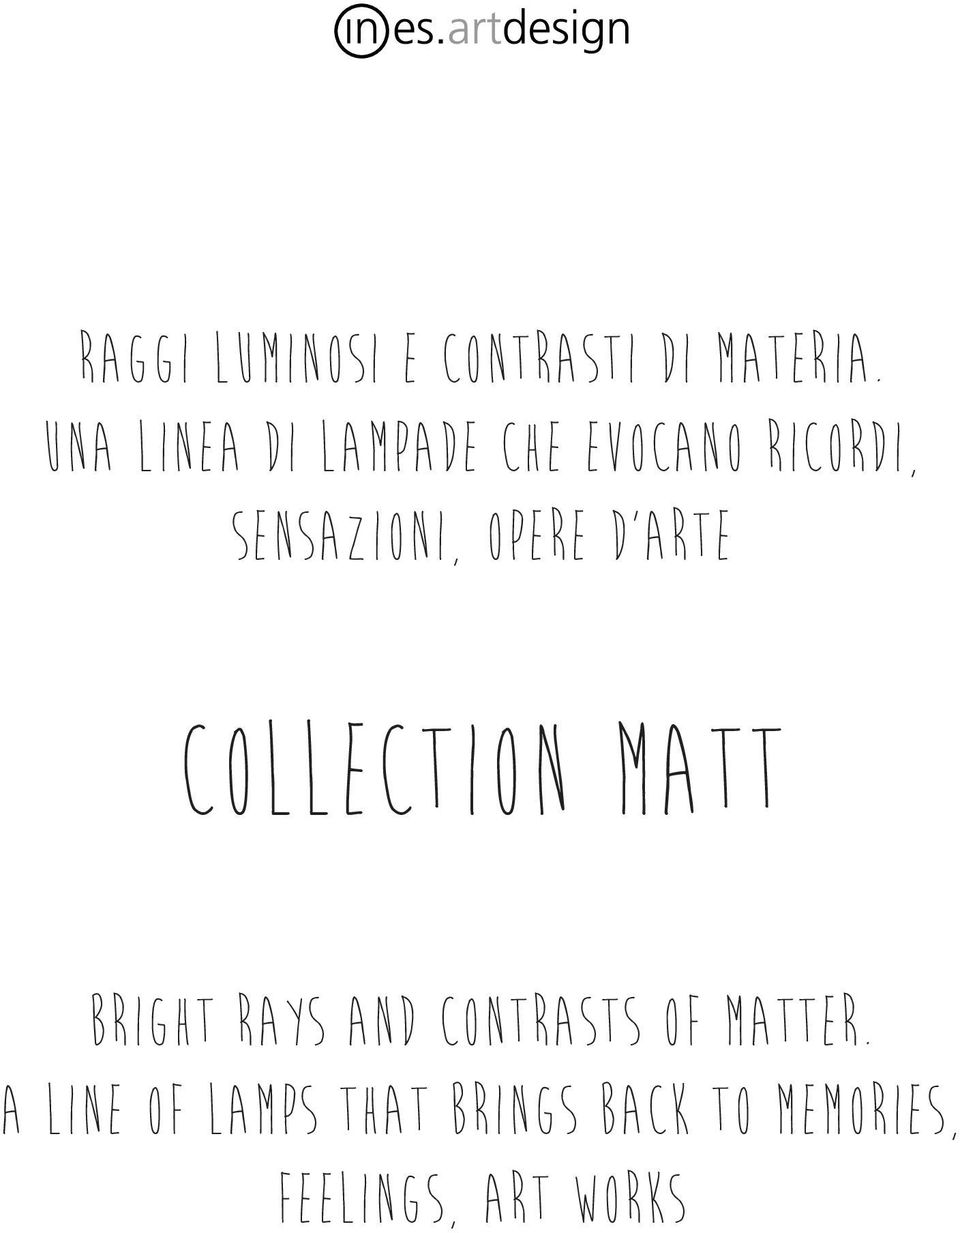 opere d arte COLLECTION MATT Bright rays and contrasts